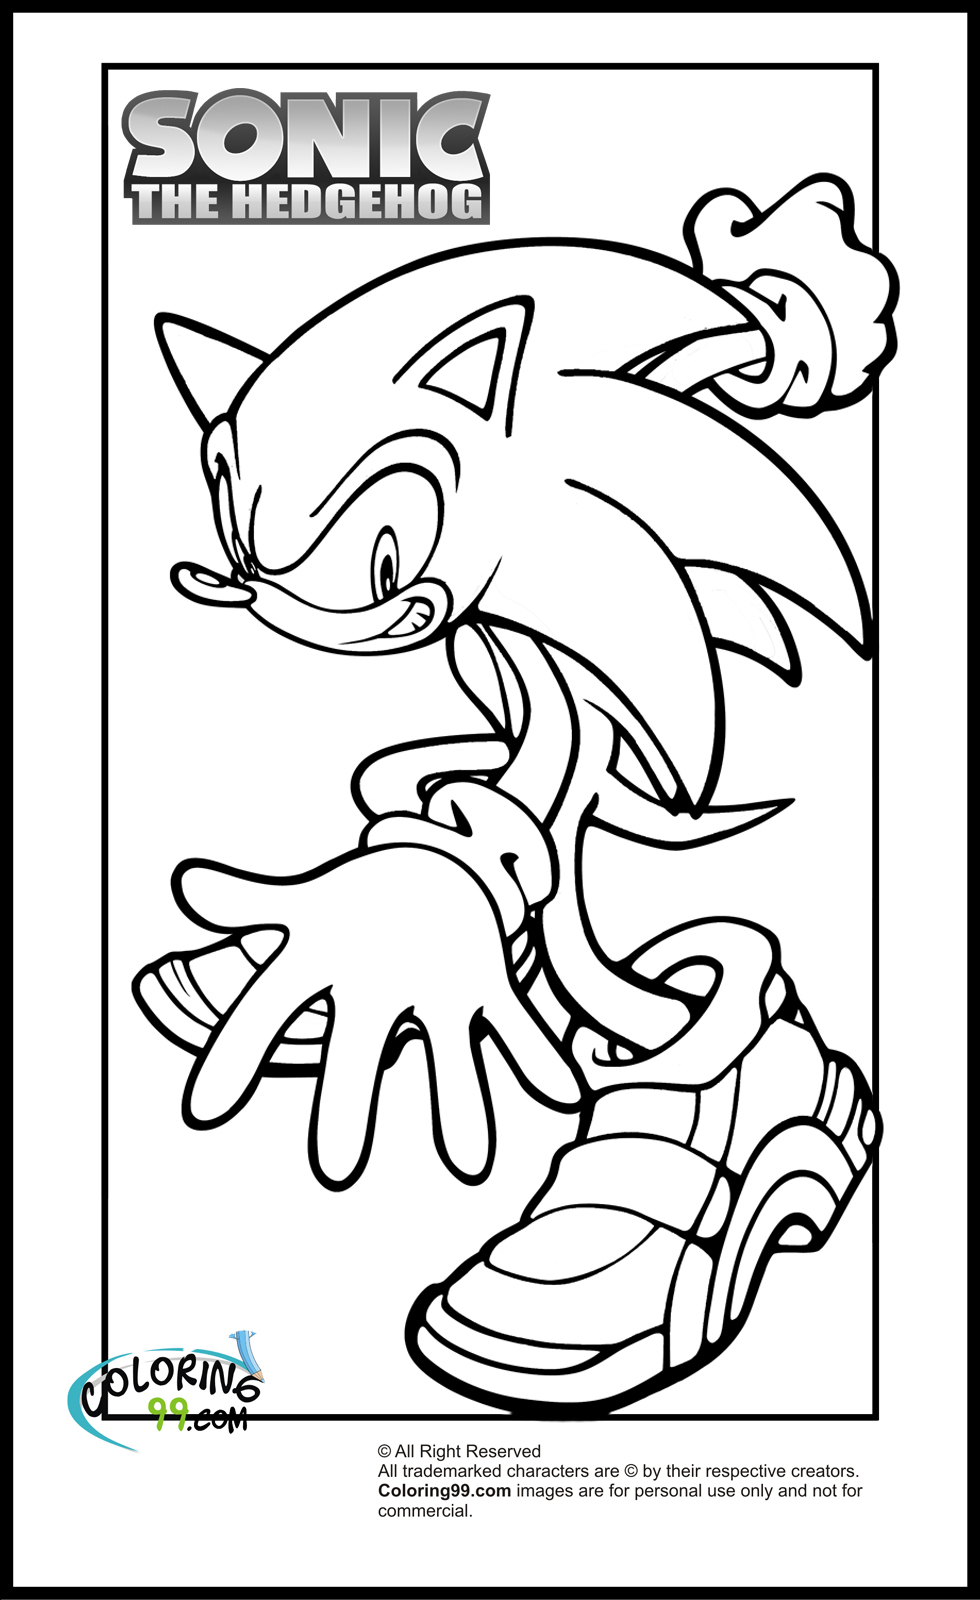 Sonic Colors Coloring Pages Coloring Pictures to Pin on Pinterest